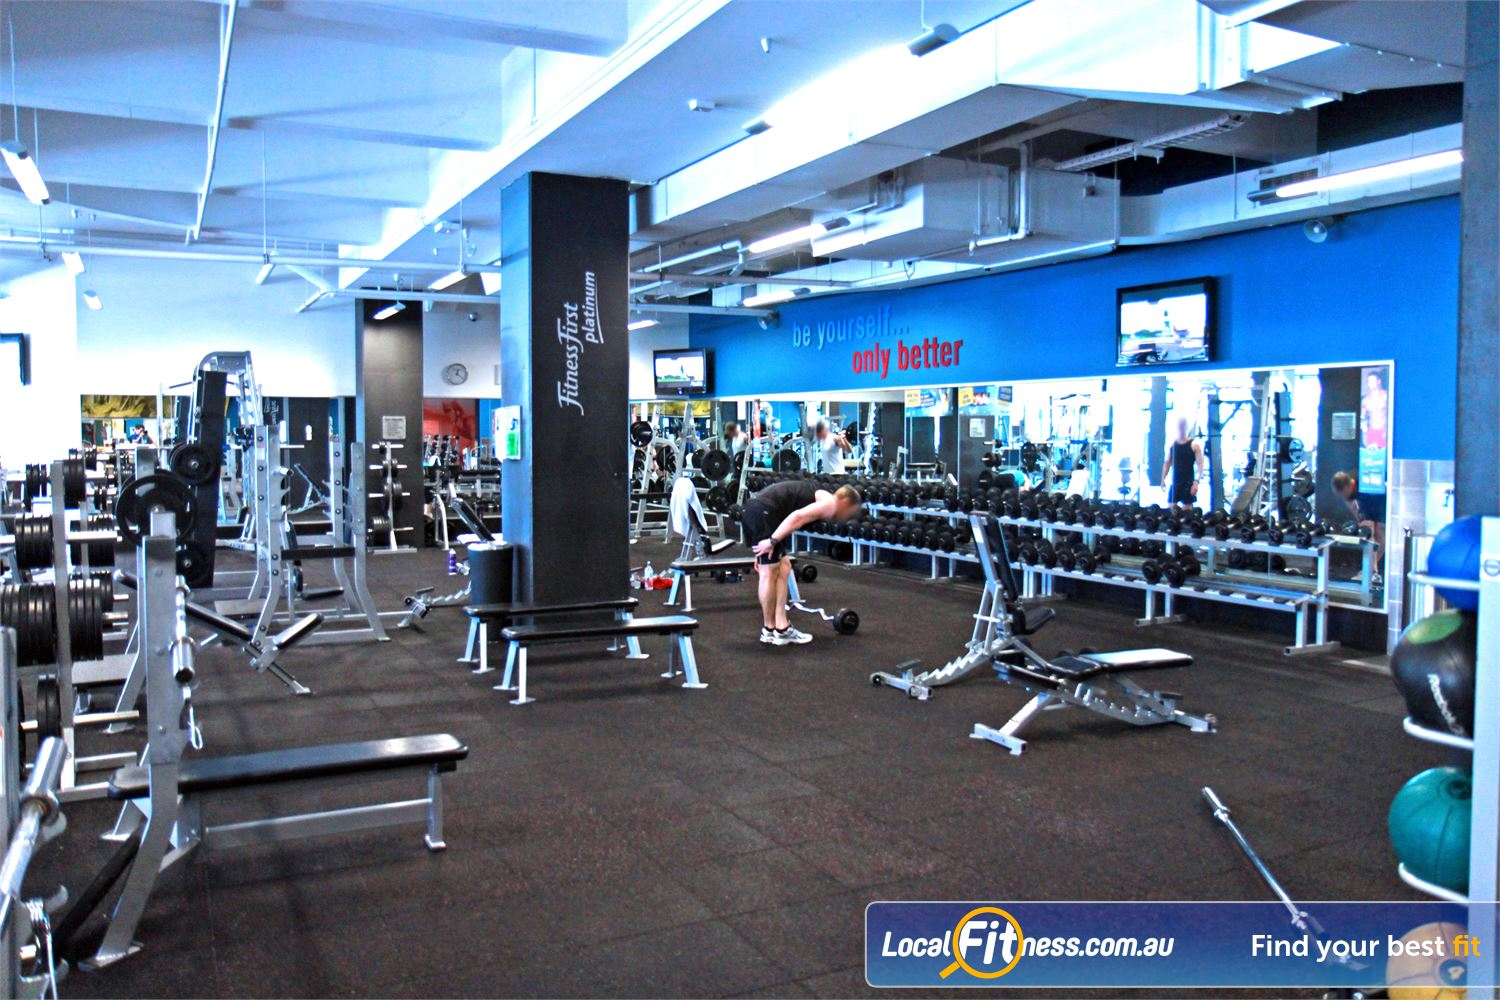 Goodlife Health Clubs Subiaco Goodlife Subiaco gym provides an extensive range of free-weights.